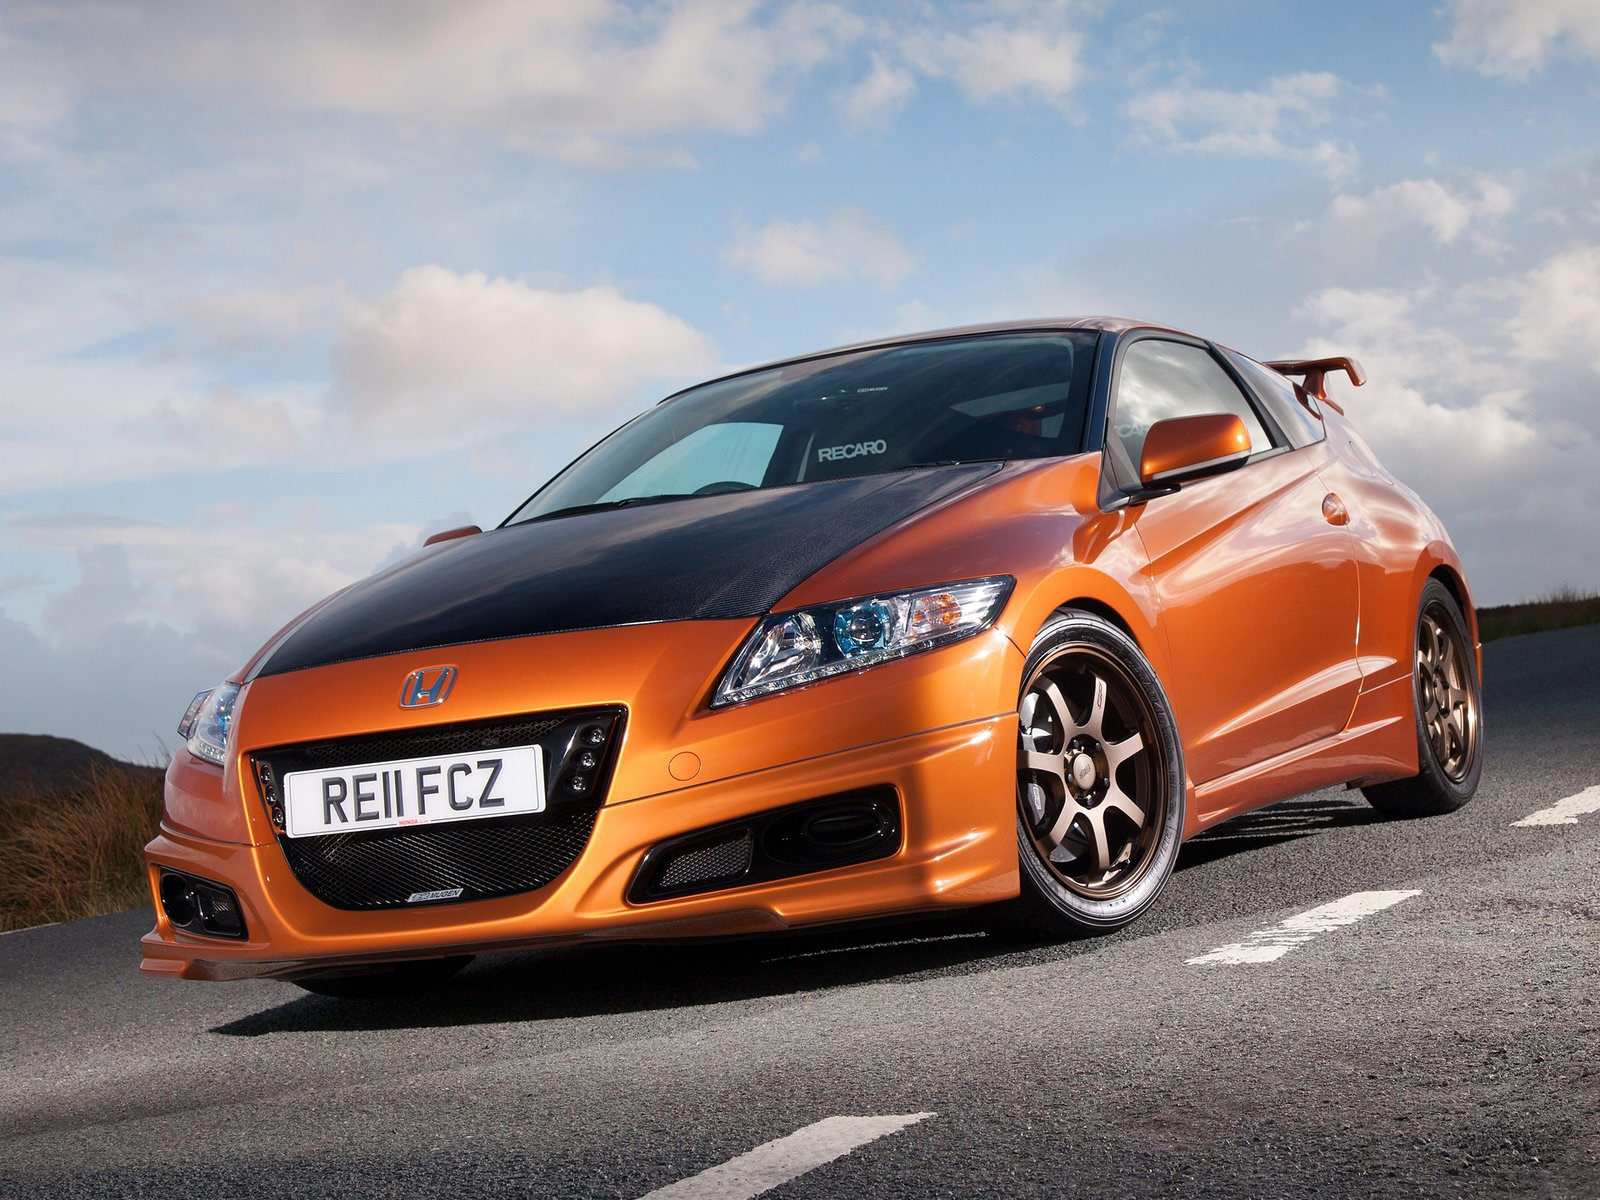 2011 honda cr z mugen concept japanese car photos. Black Bedroom Furniture Sets. Home Design Ideas